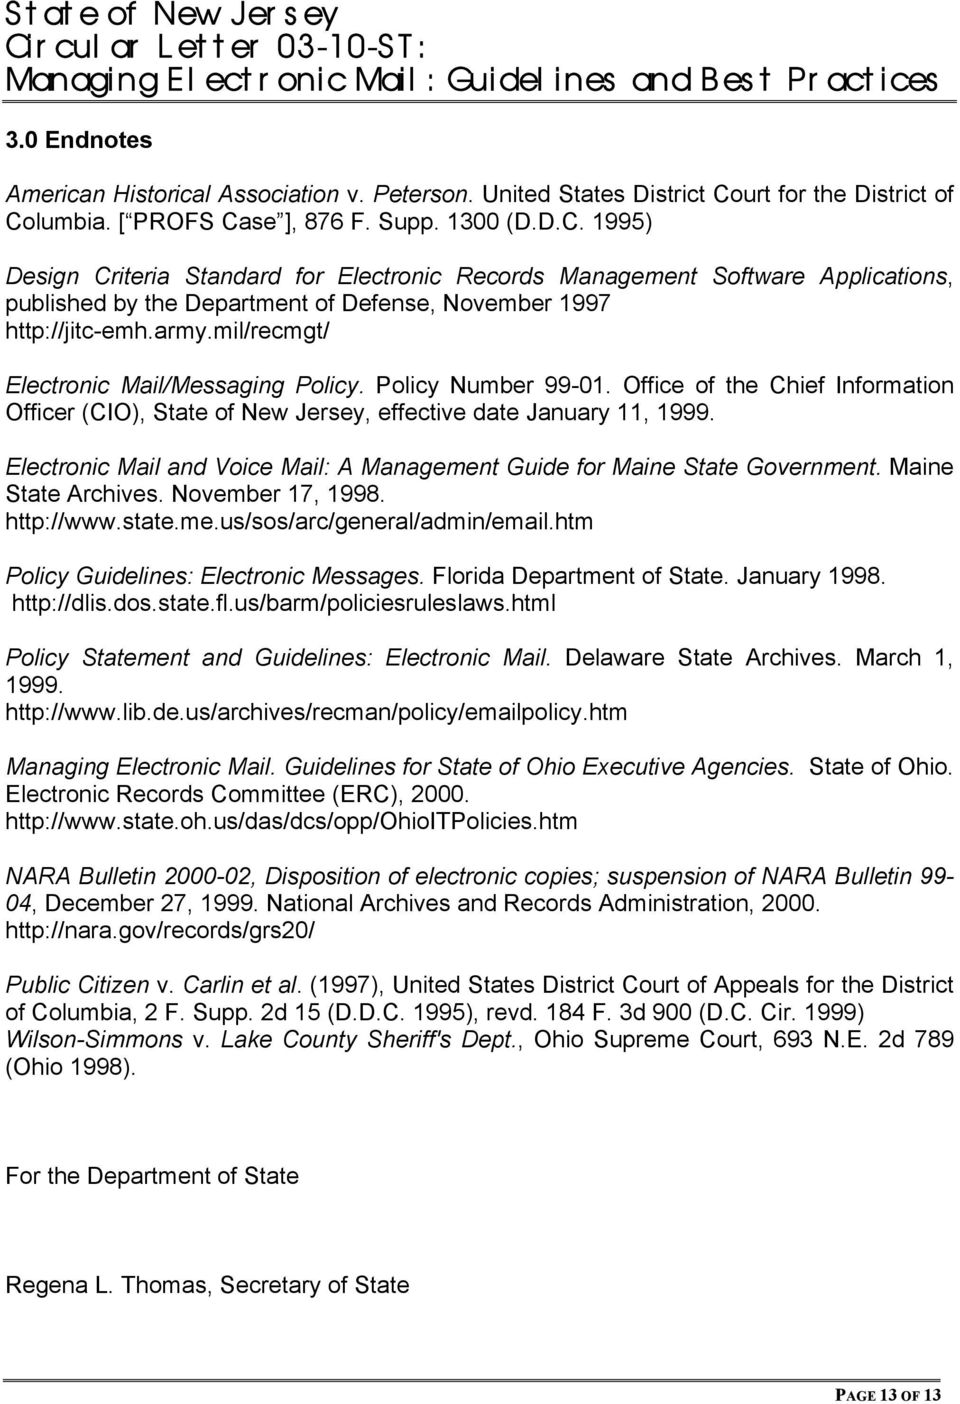 army.mil/recmgt/ Electronic Mail/Messaging Policy. Policy Number 99-01. Office of the Chief Information Officer (CIO), State of New Jersey, effective date January 11, 1999.